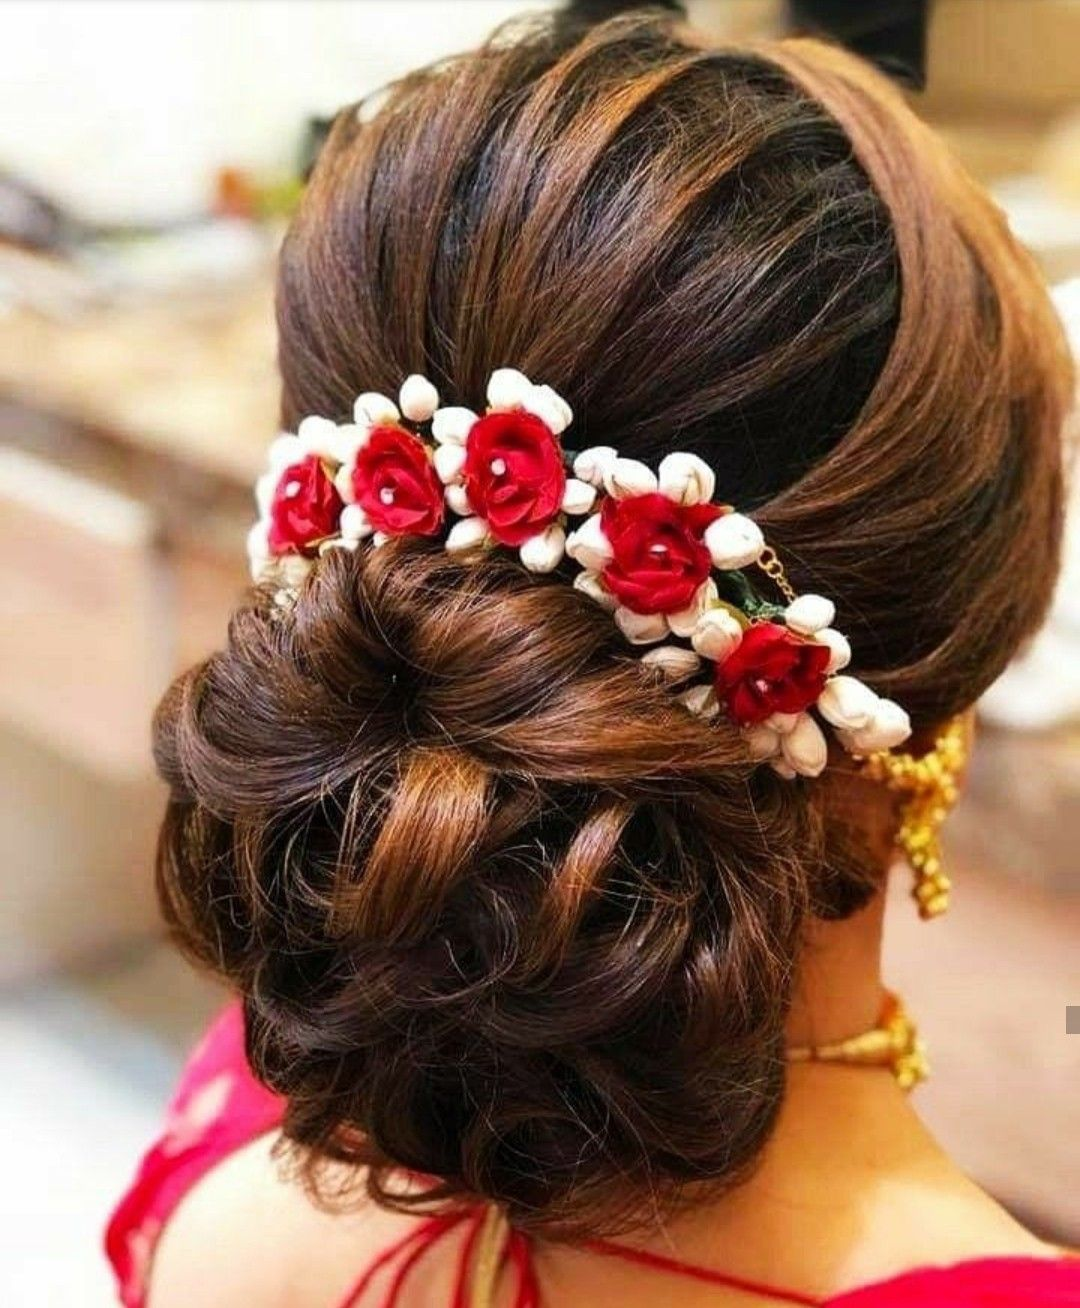 pin by shalieni nadaraja on hair styles | indian wedding